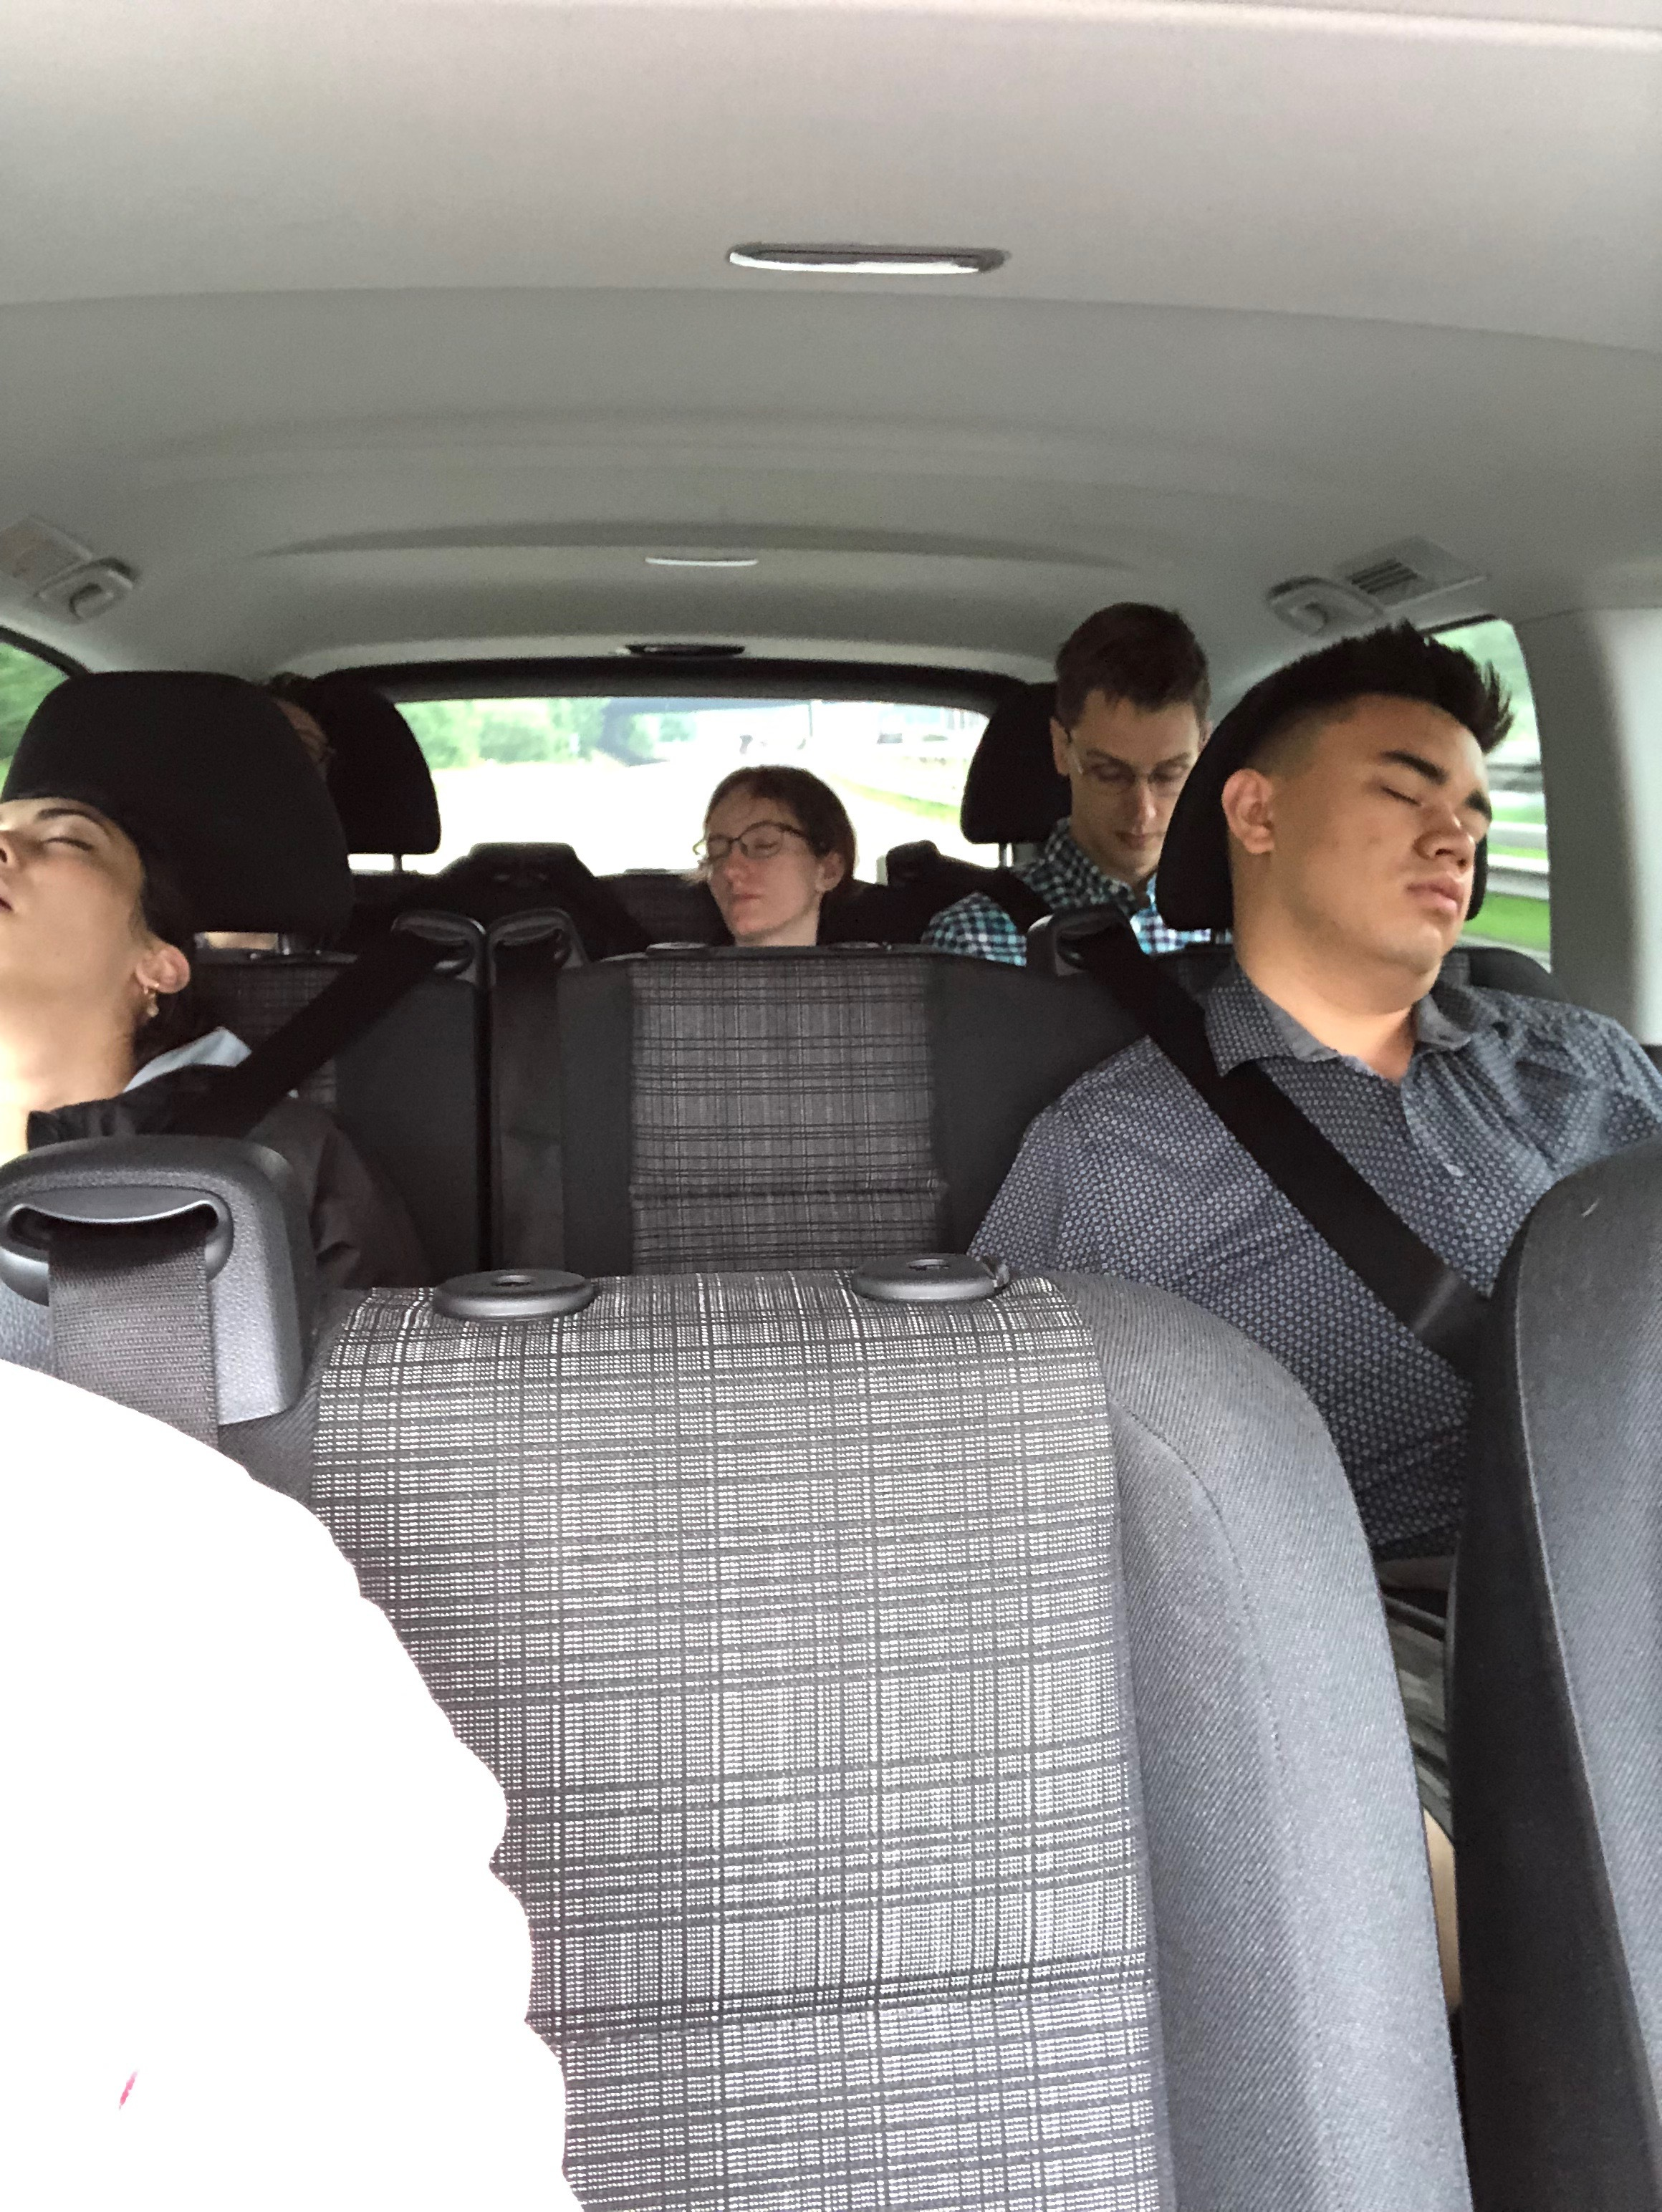 On the (more than) 2-hour drive, many of our group found time for a nap…!